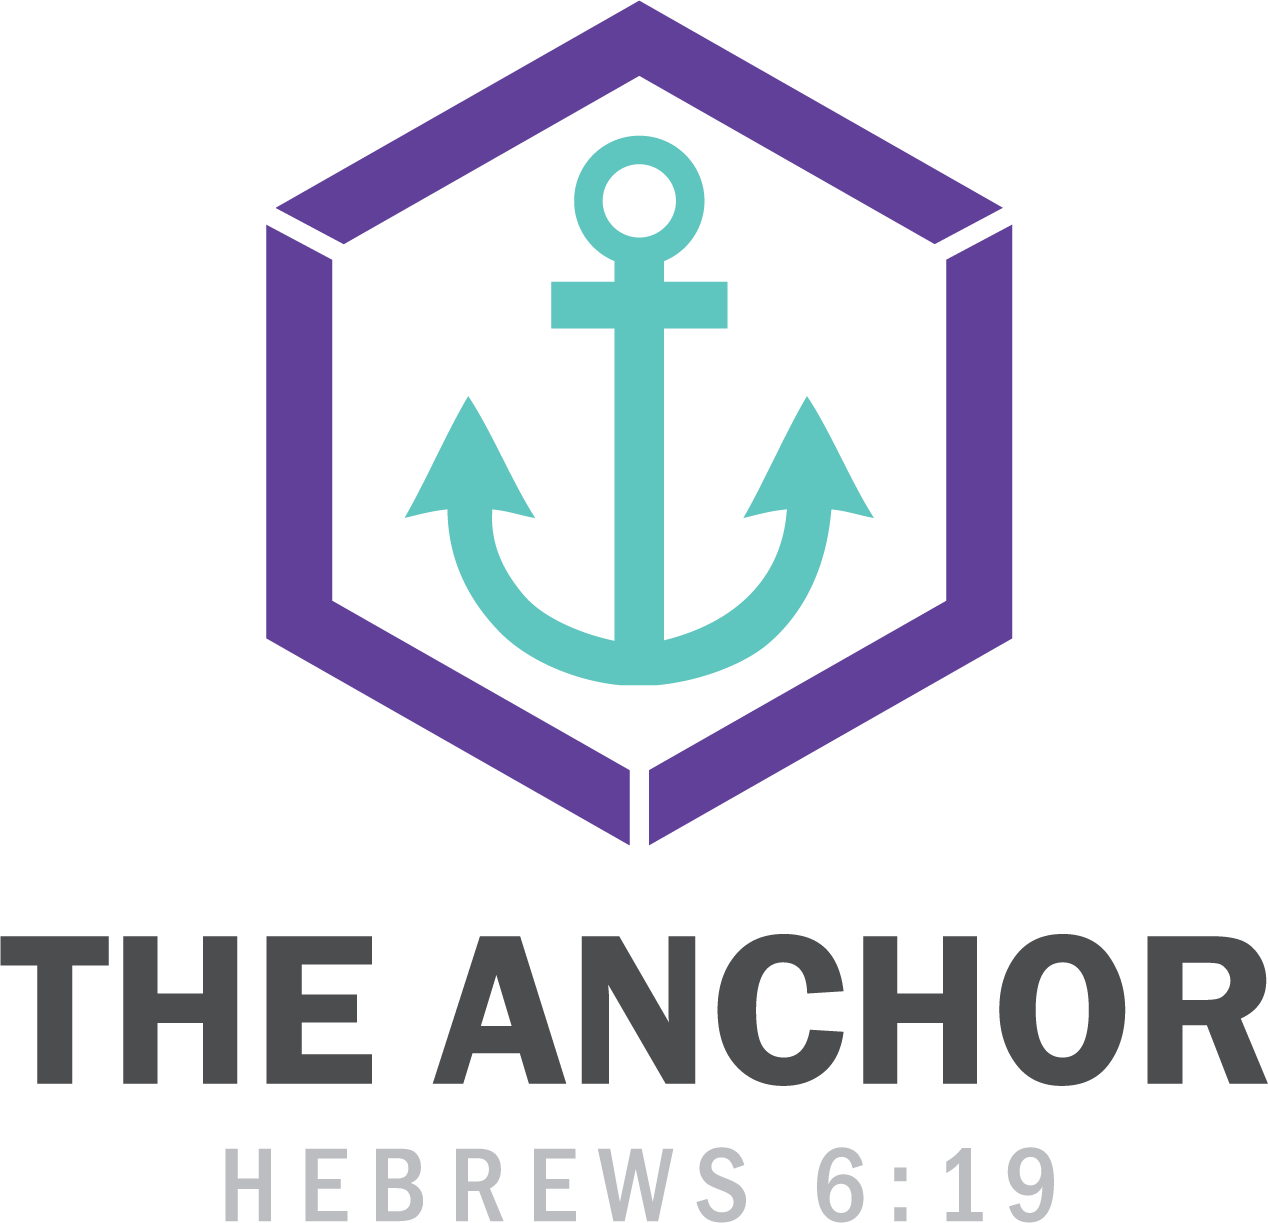 TheAnchor_Logo-PMS_266+3258+Black.png